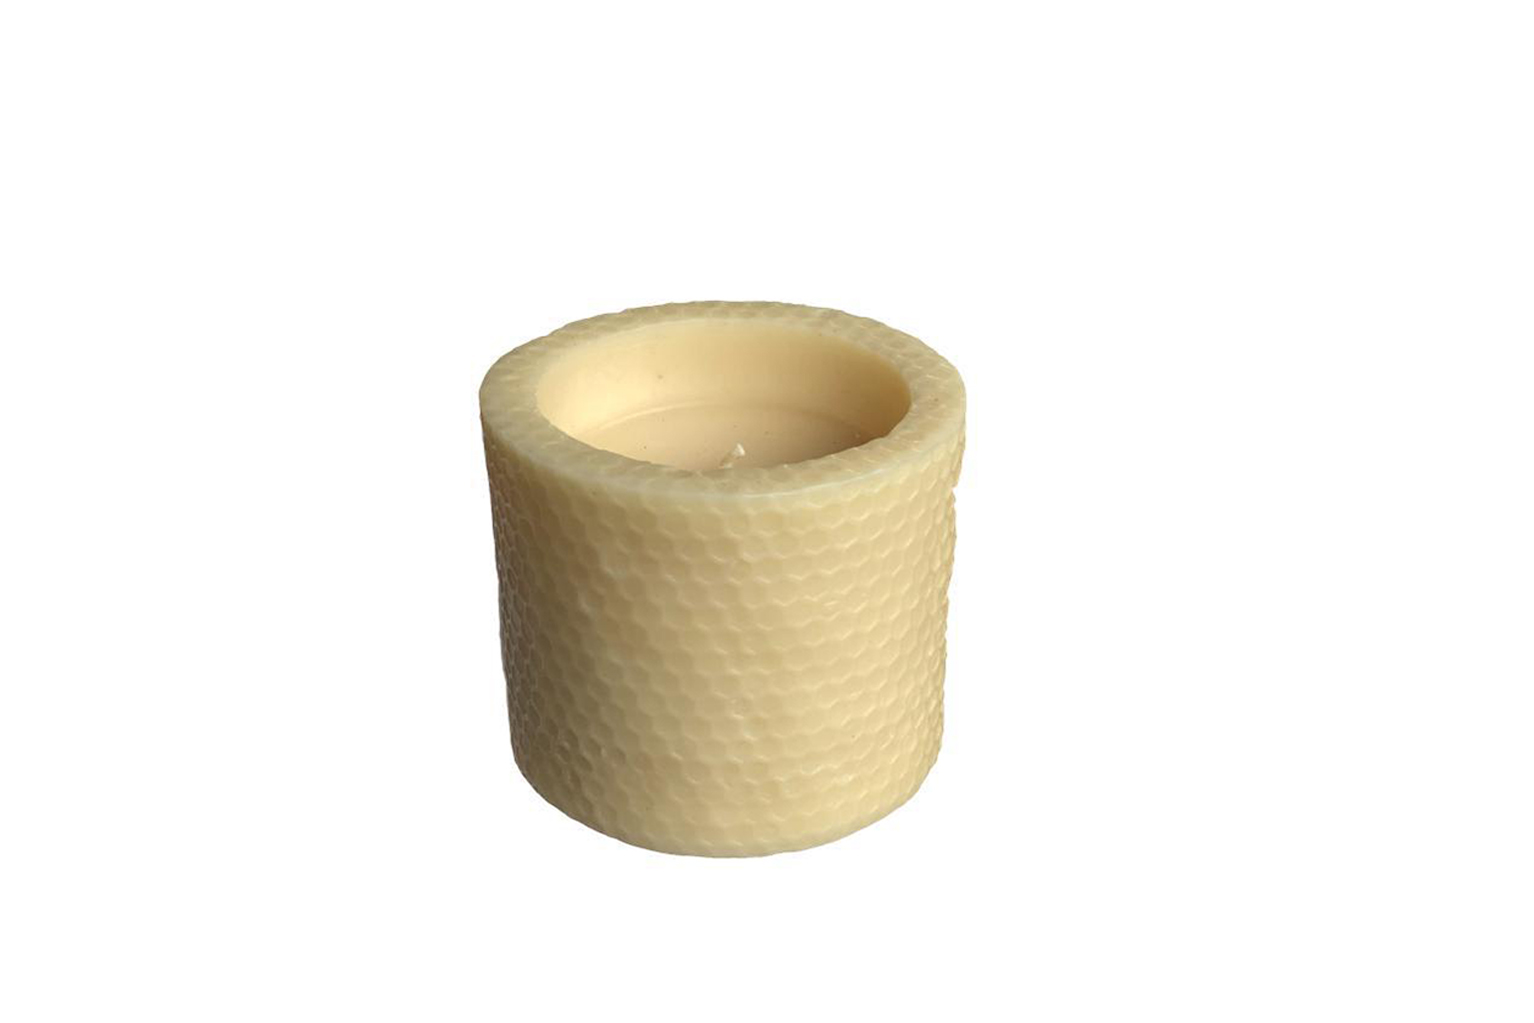 Honeycomb Recessed Beeswax Candle - Medium - S$50